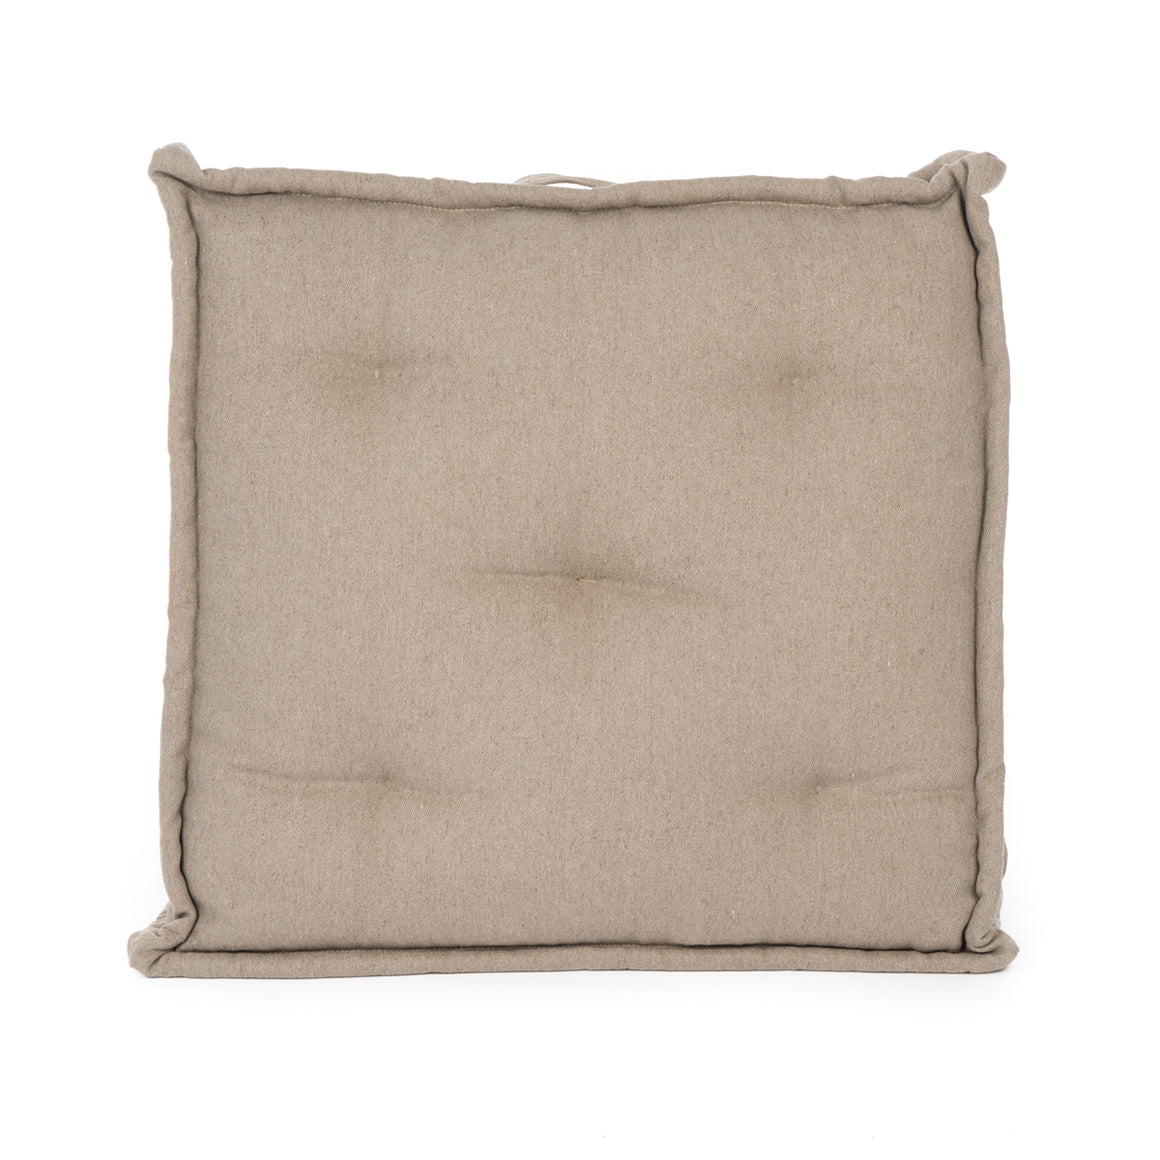 Tufted French Floor Cushions